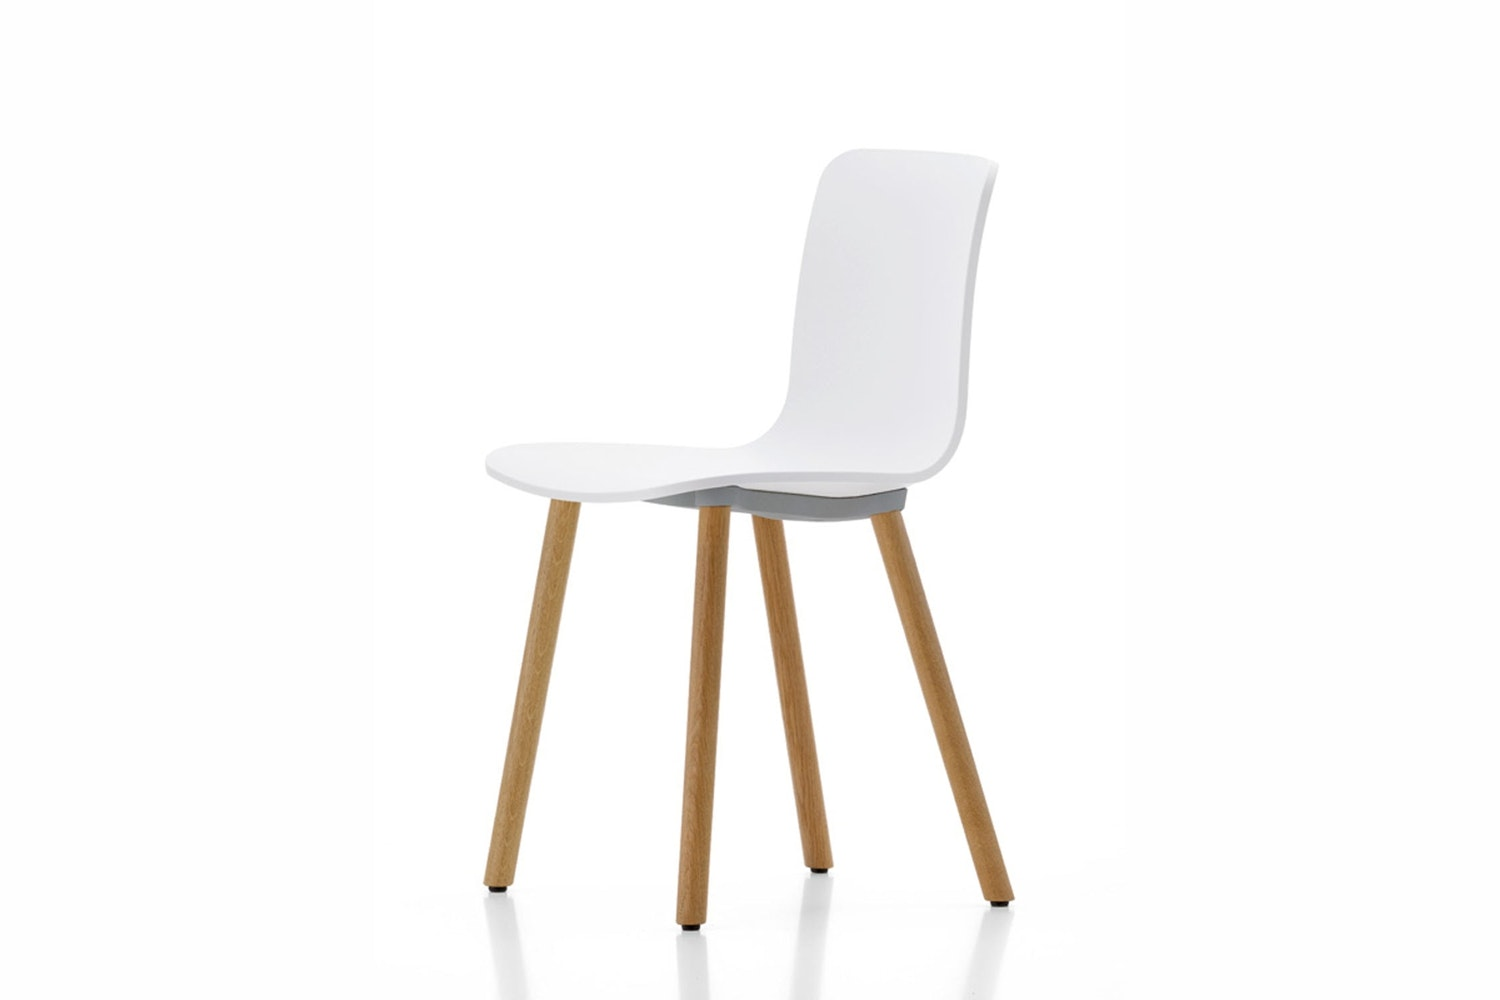 HAL Wood Chair by Jasper Morrison for Vitra